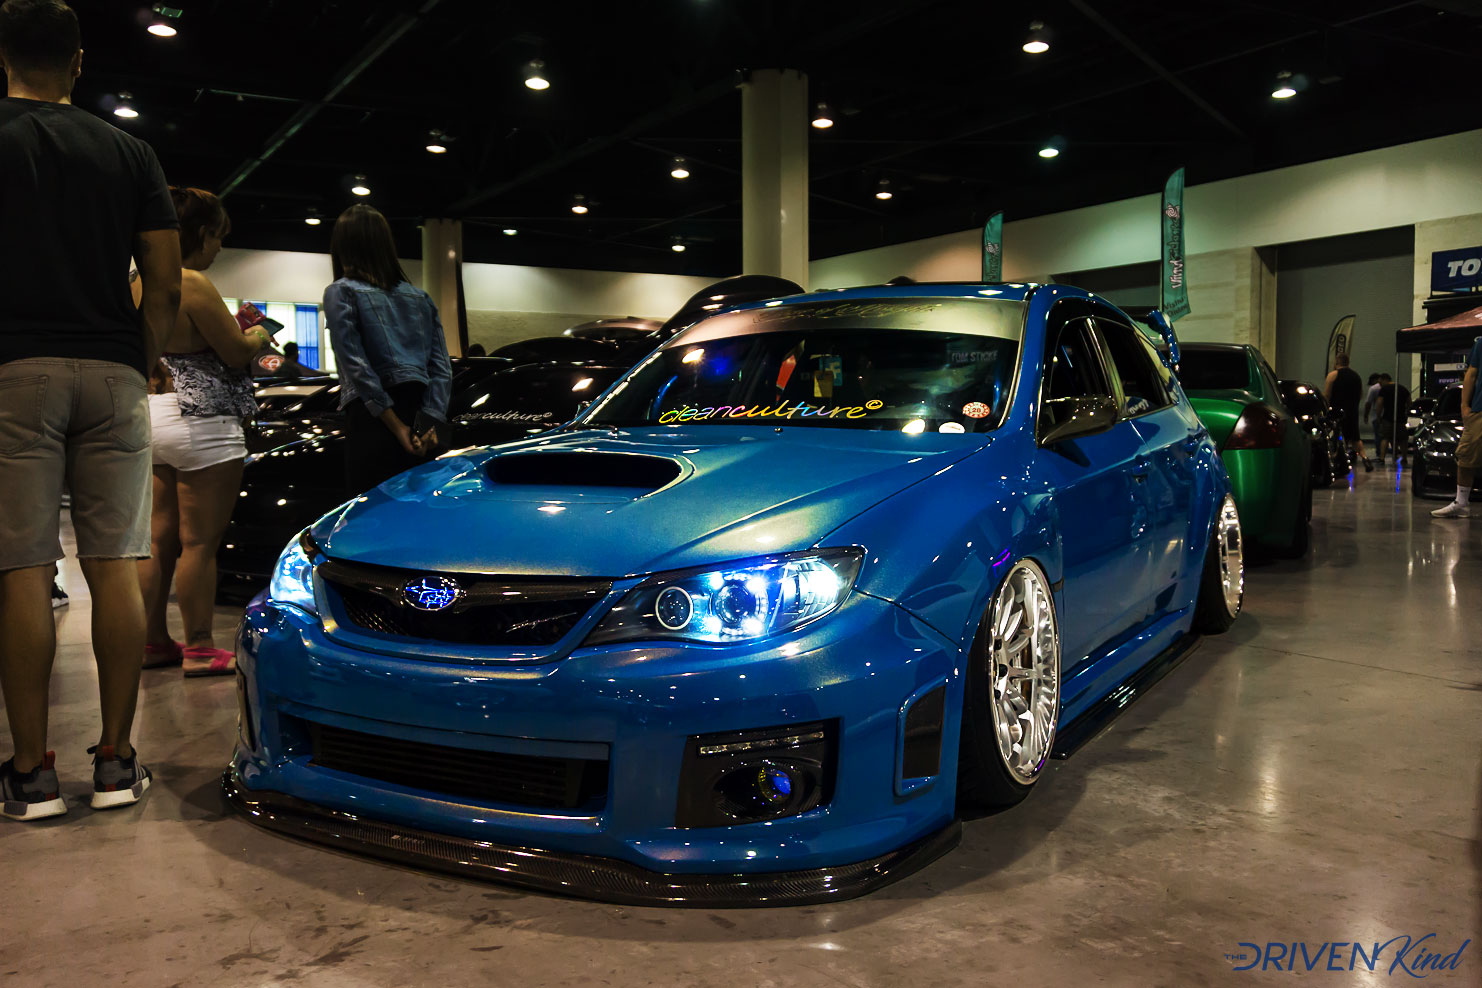 Subaru WRX STI Tuner Evolution Car Show Coverage Daytona Beach by The Driven Kind